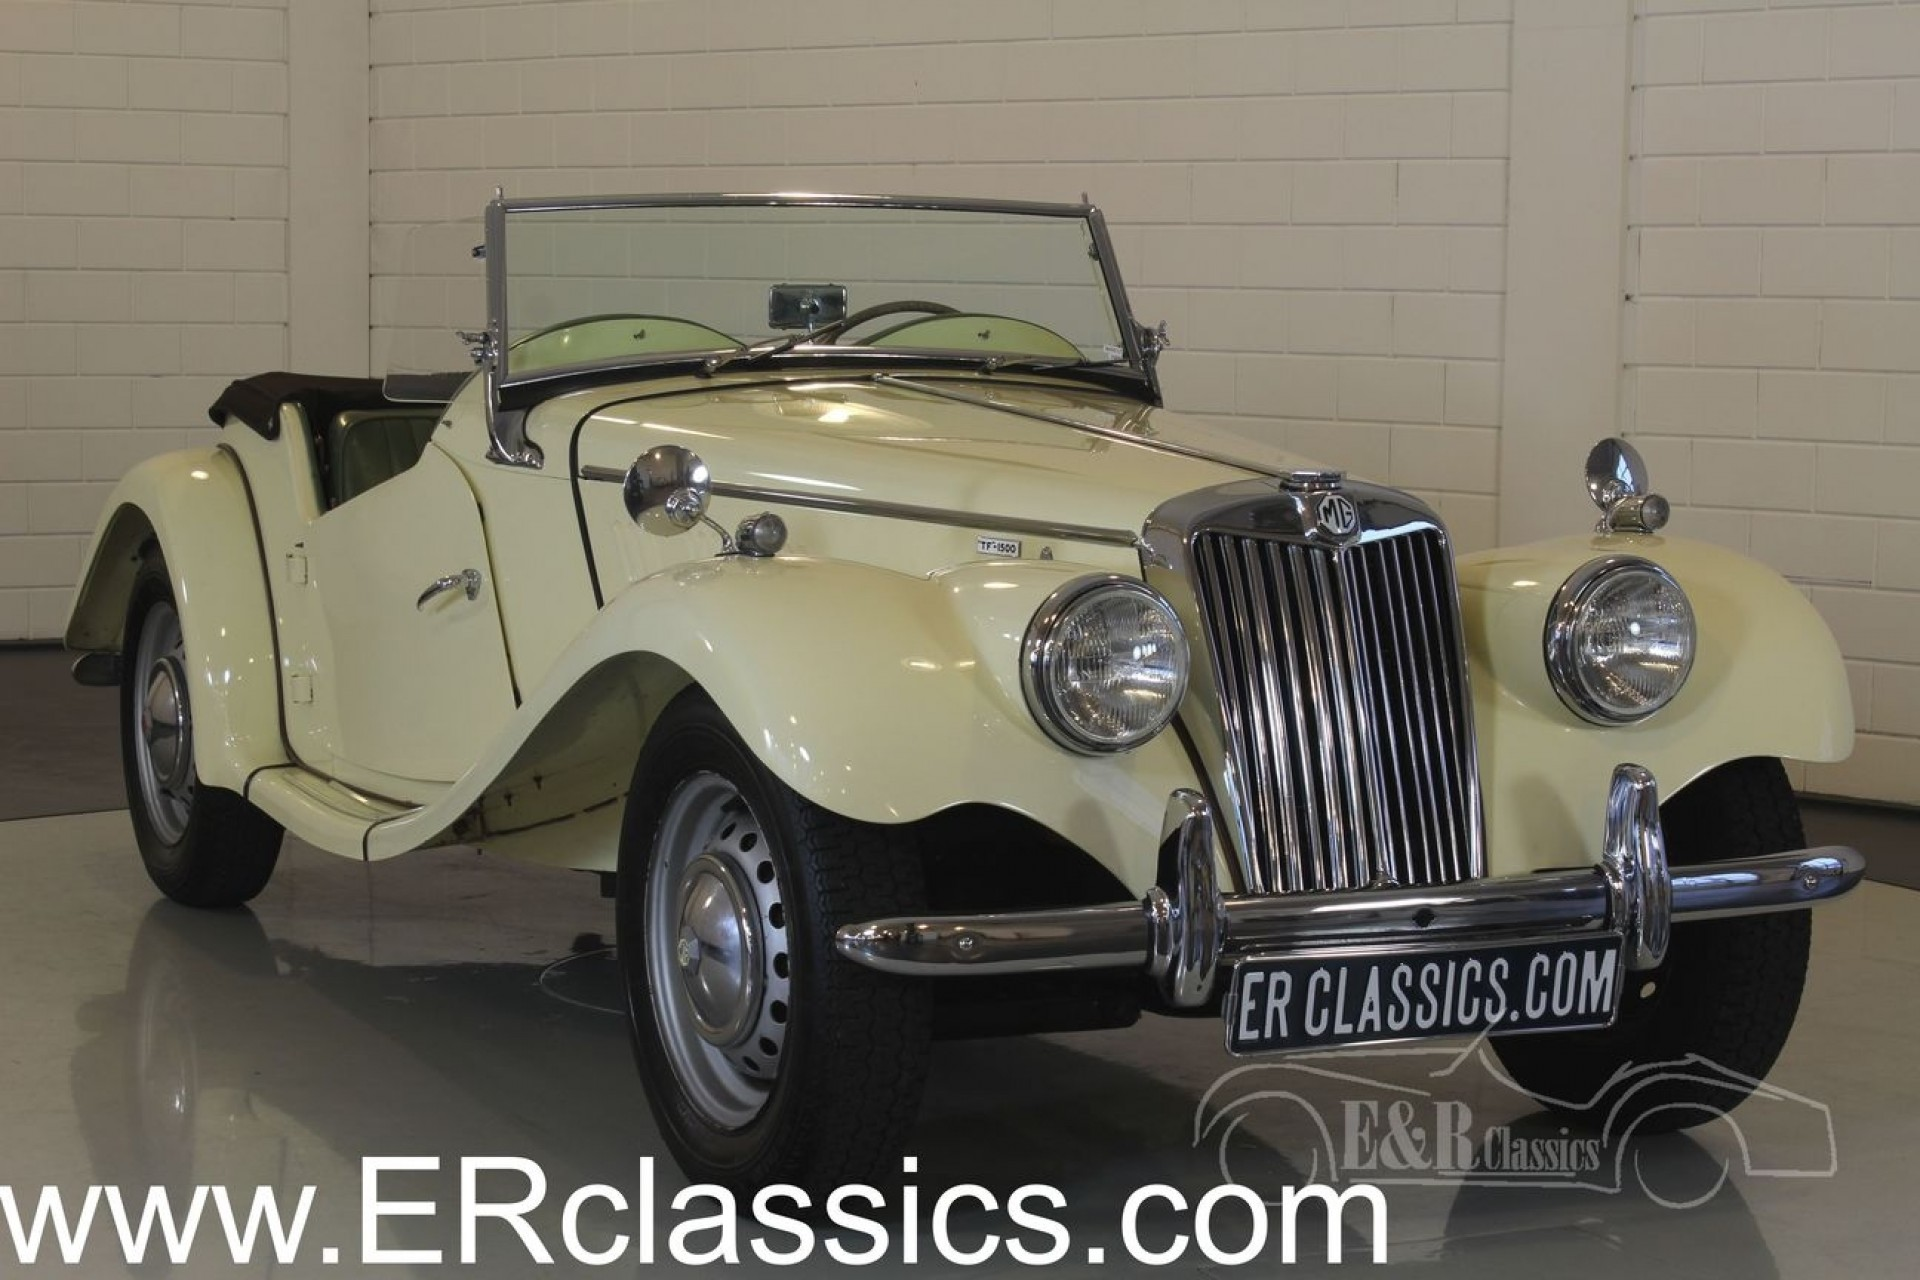 MG Classic Cars | MG oldtimers for sale at E&R Classic Cars!